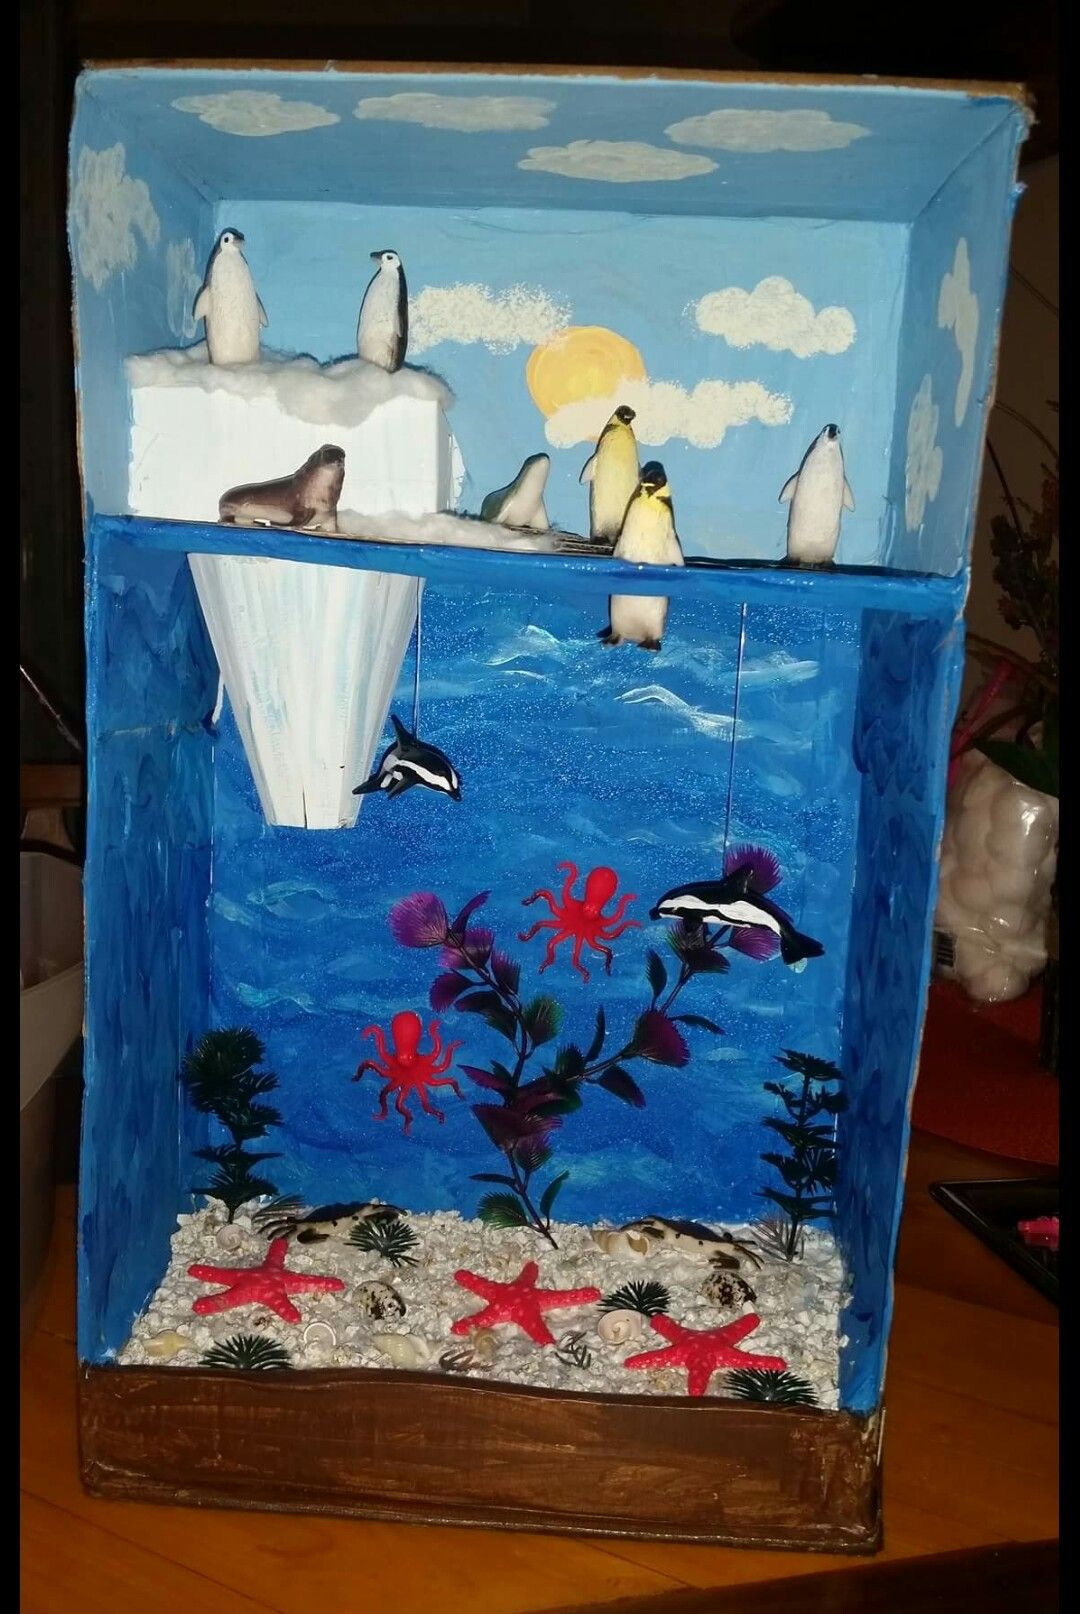 diorama projects Dltk's educational activities - book report ideas make a diorama welcome to the diorama -- today's grade school staple for all sorts of projects.